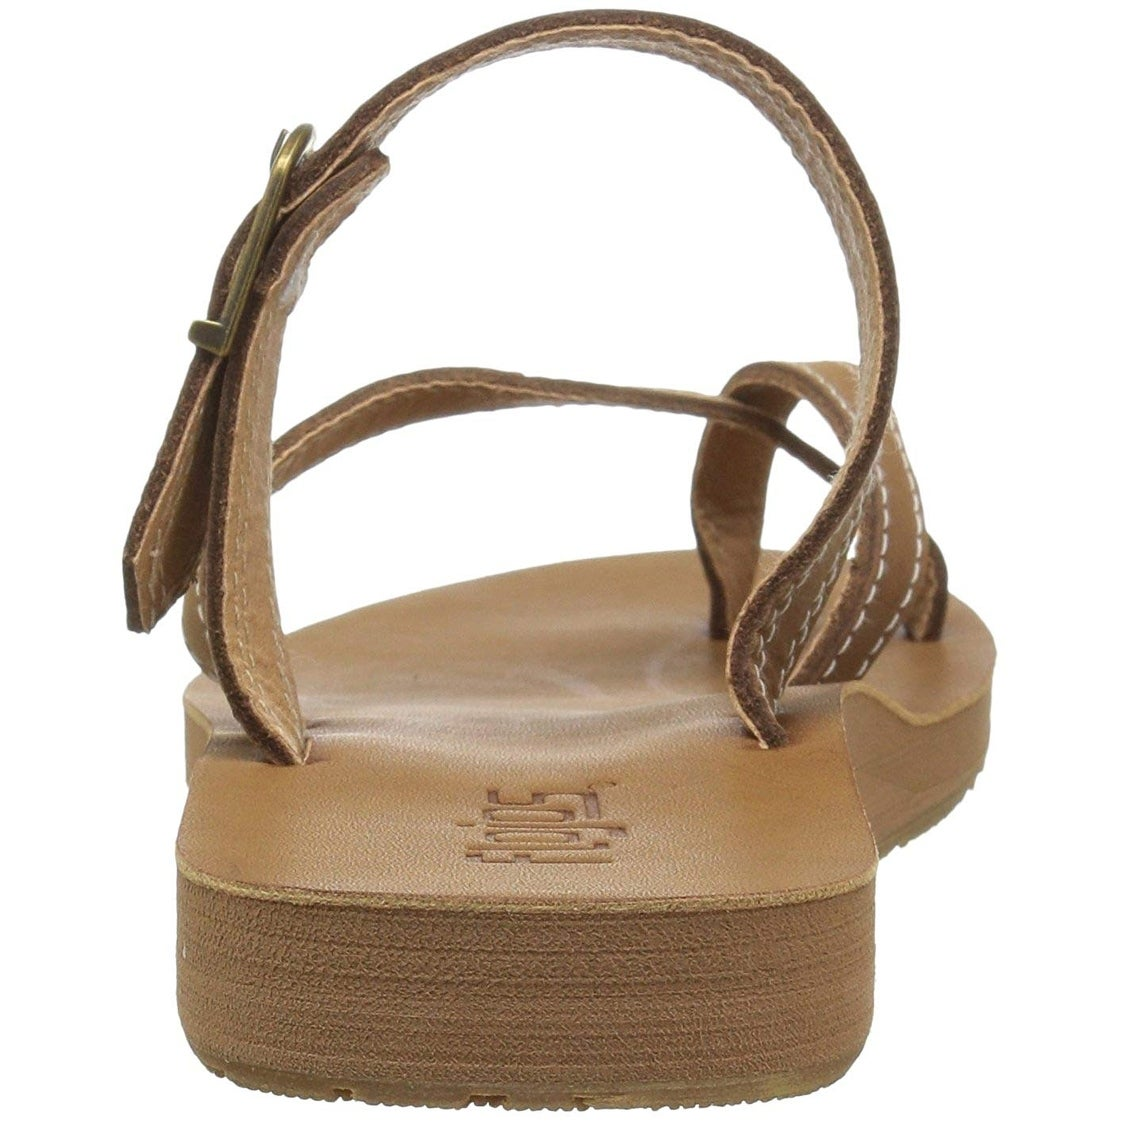 e11162f6bf Shop Flojos Women's Rylee Flip-Flop - Free Shipping On Orders Over $45 -  Overstock - 22882559